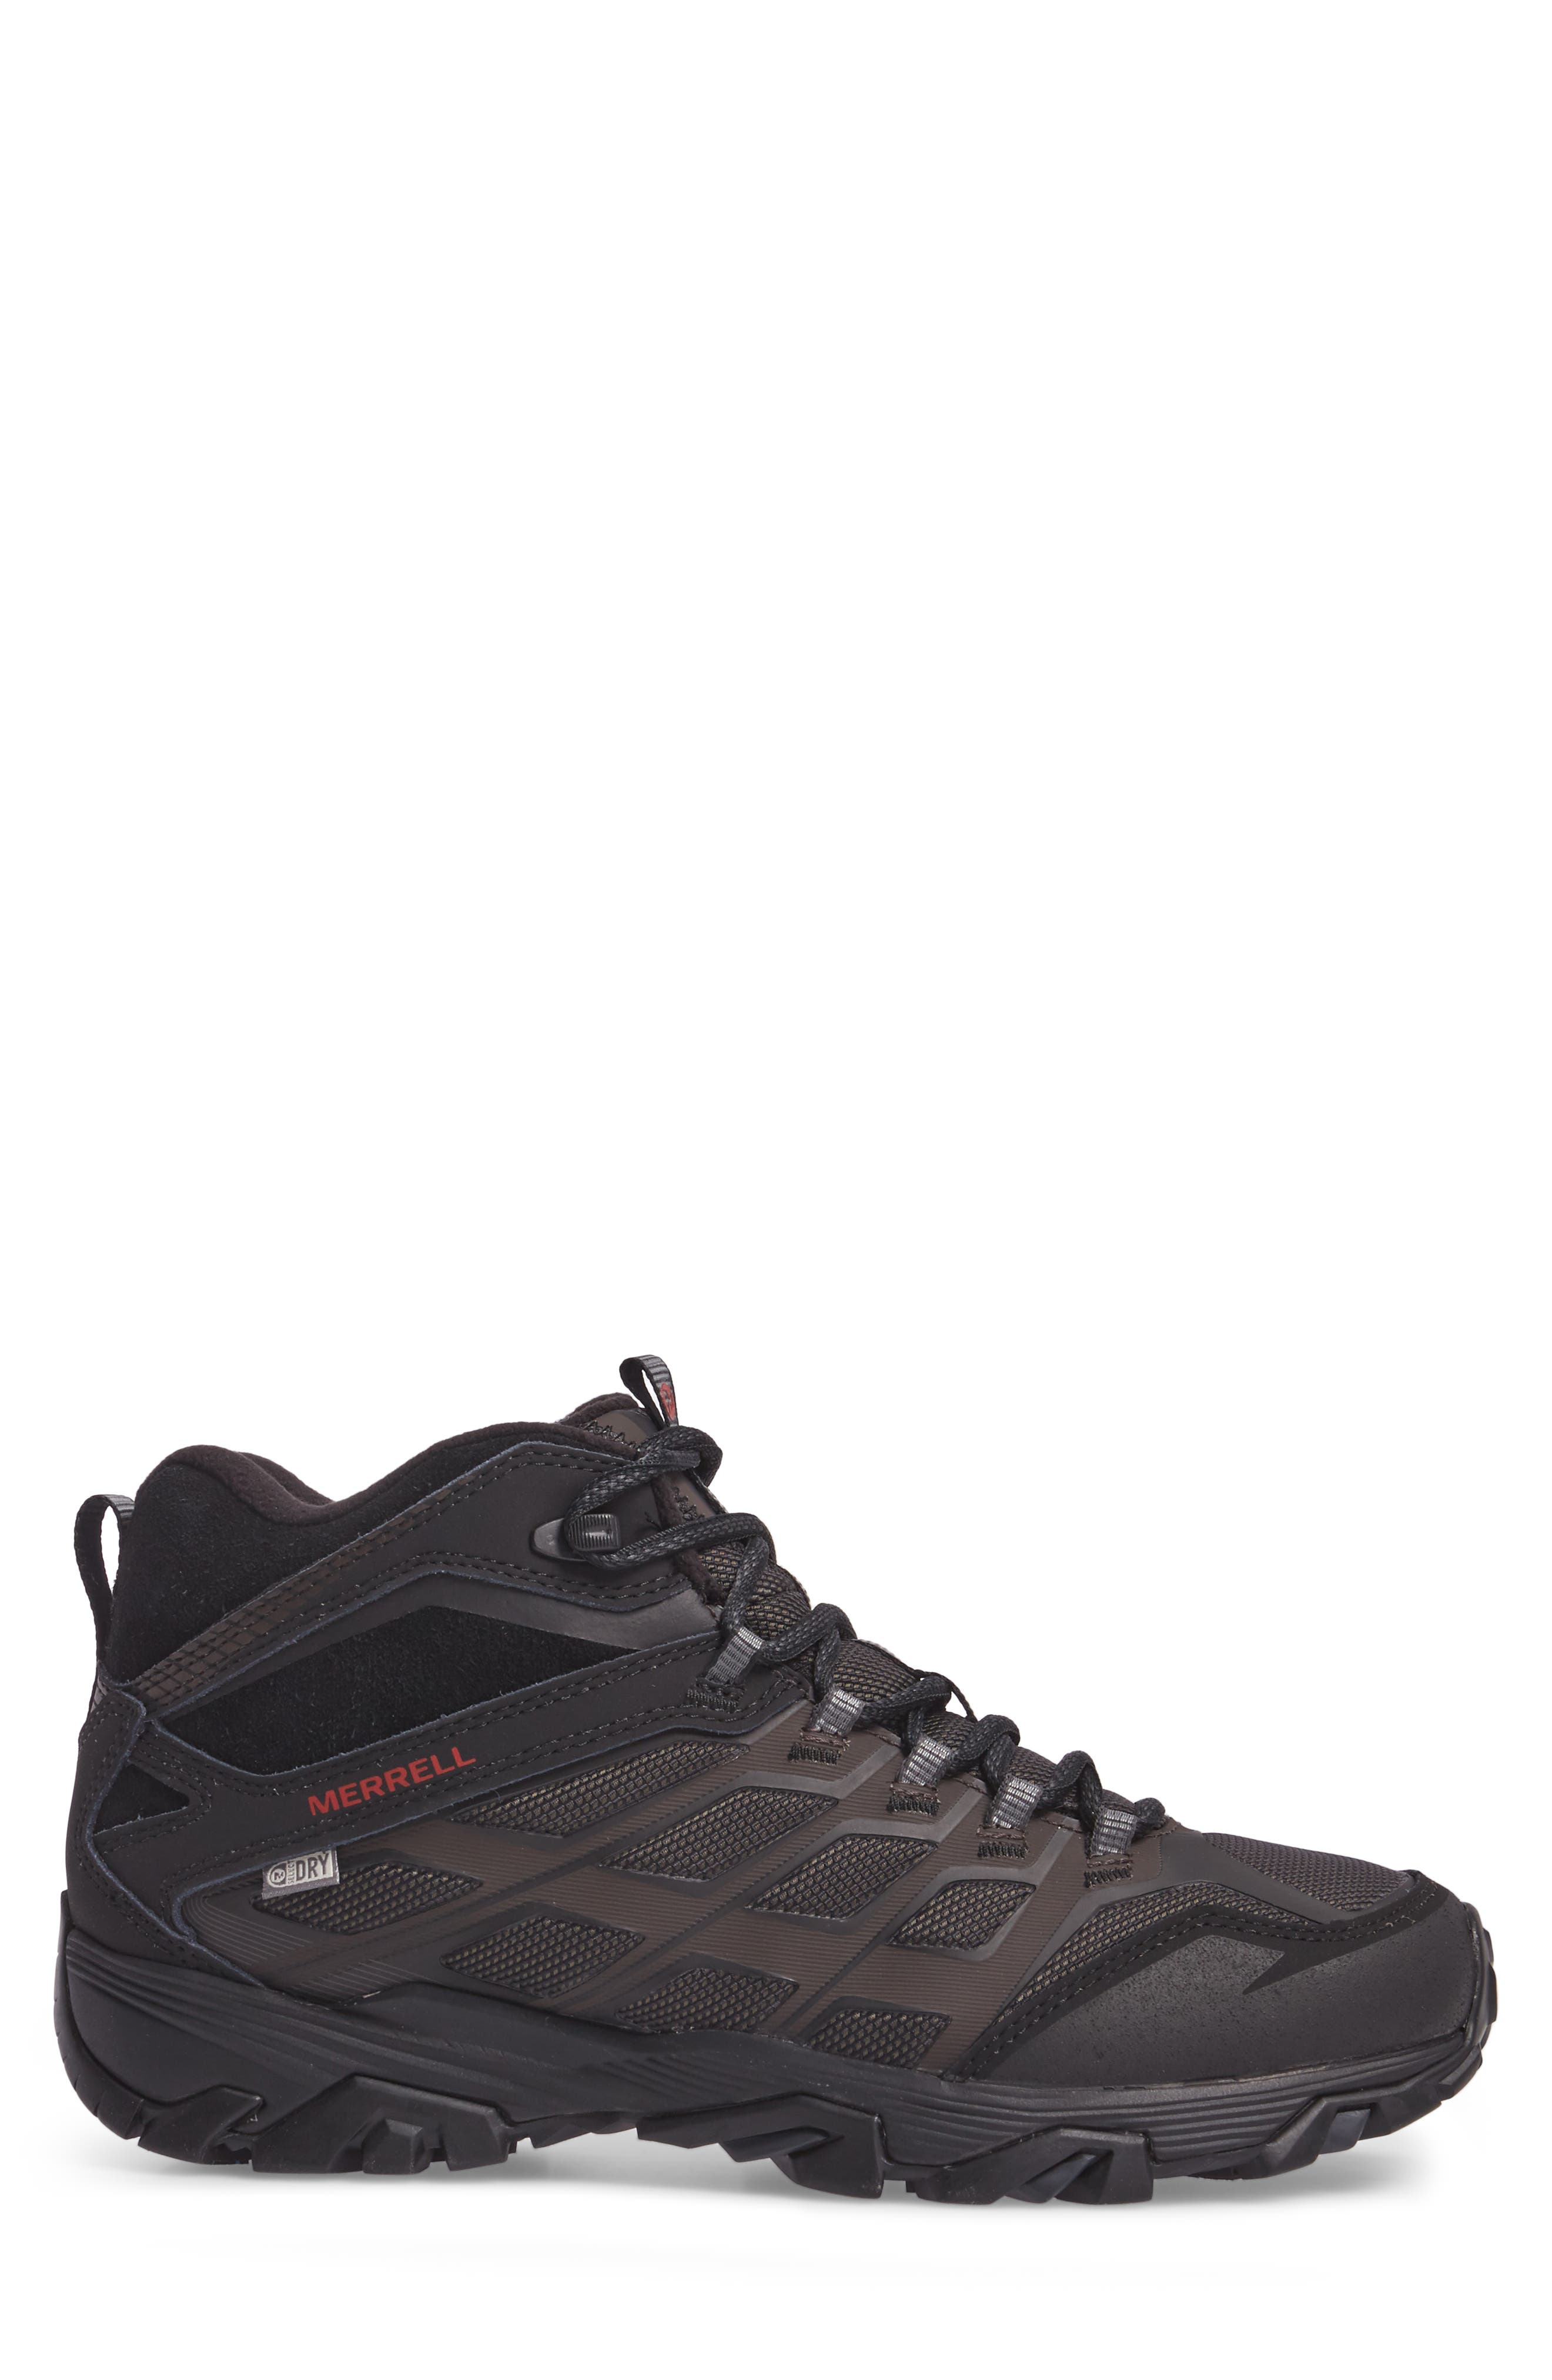 Moab FST Ice Thermo Waterproof Hiking Shoe,                             Alternate thumbnail 3, color,                             Black Fabric